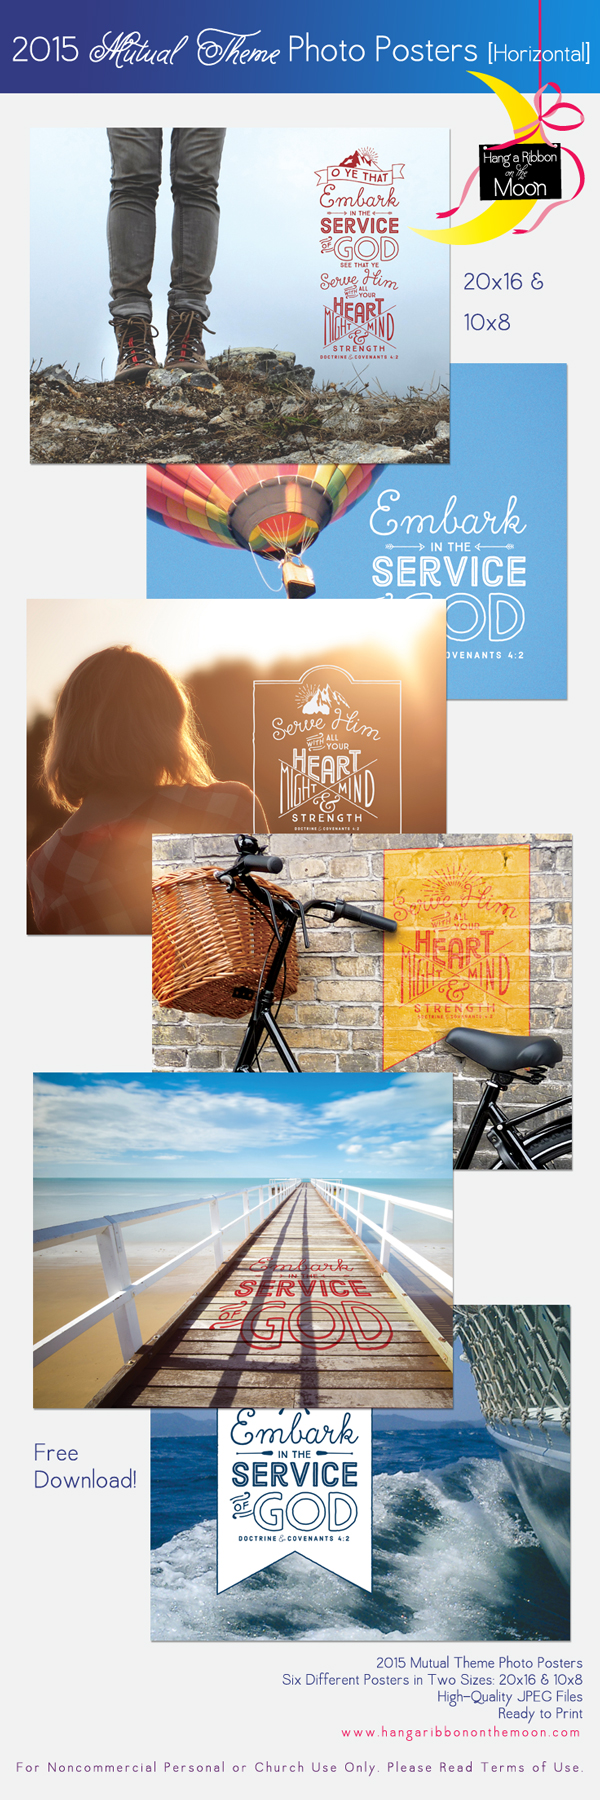 2015 Mutual Theme Photo Posters (20x16 & 10x8-inches). Six different hroizontal-format posters. FREE download! Perfect for New Beginnings, YWIE, camp, Youth Conference, binder covers, crafts, handouts, gifts and more!